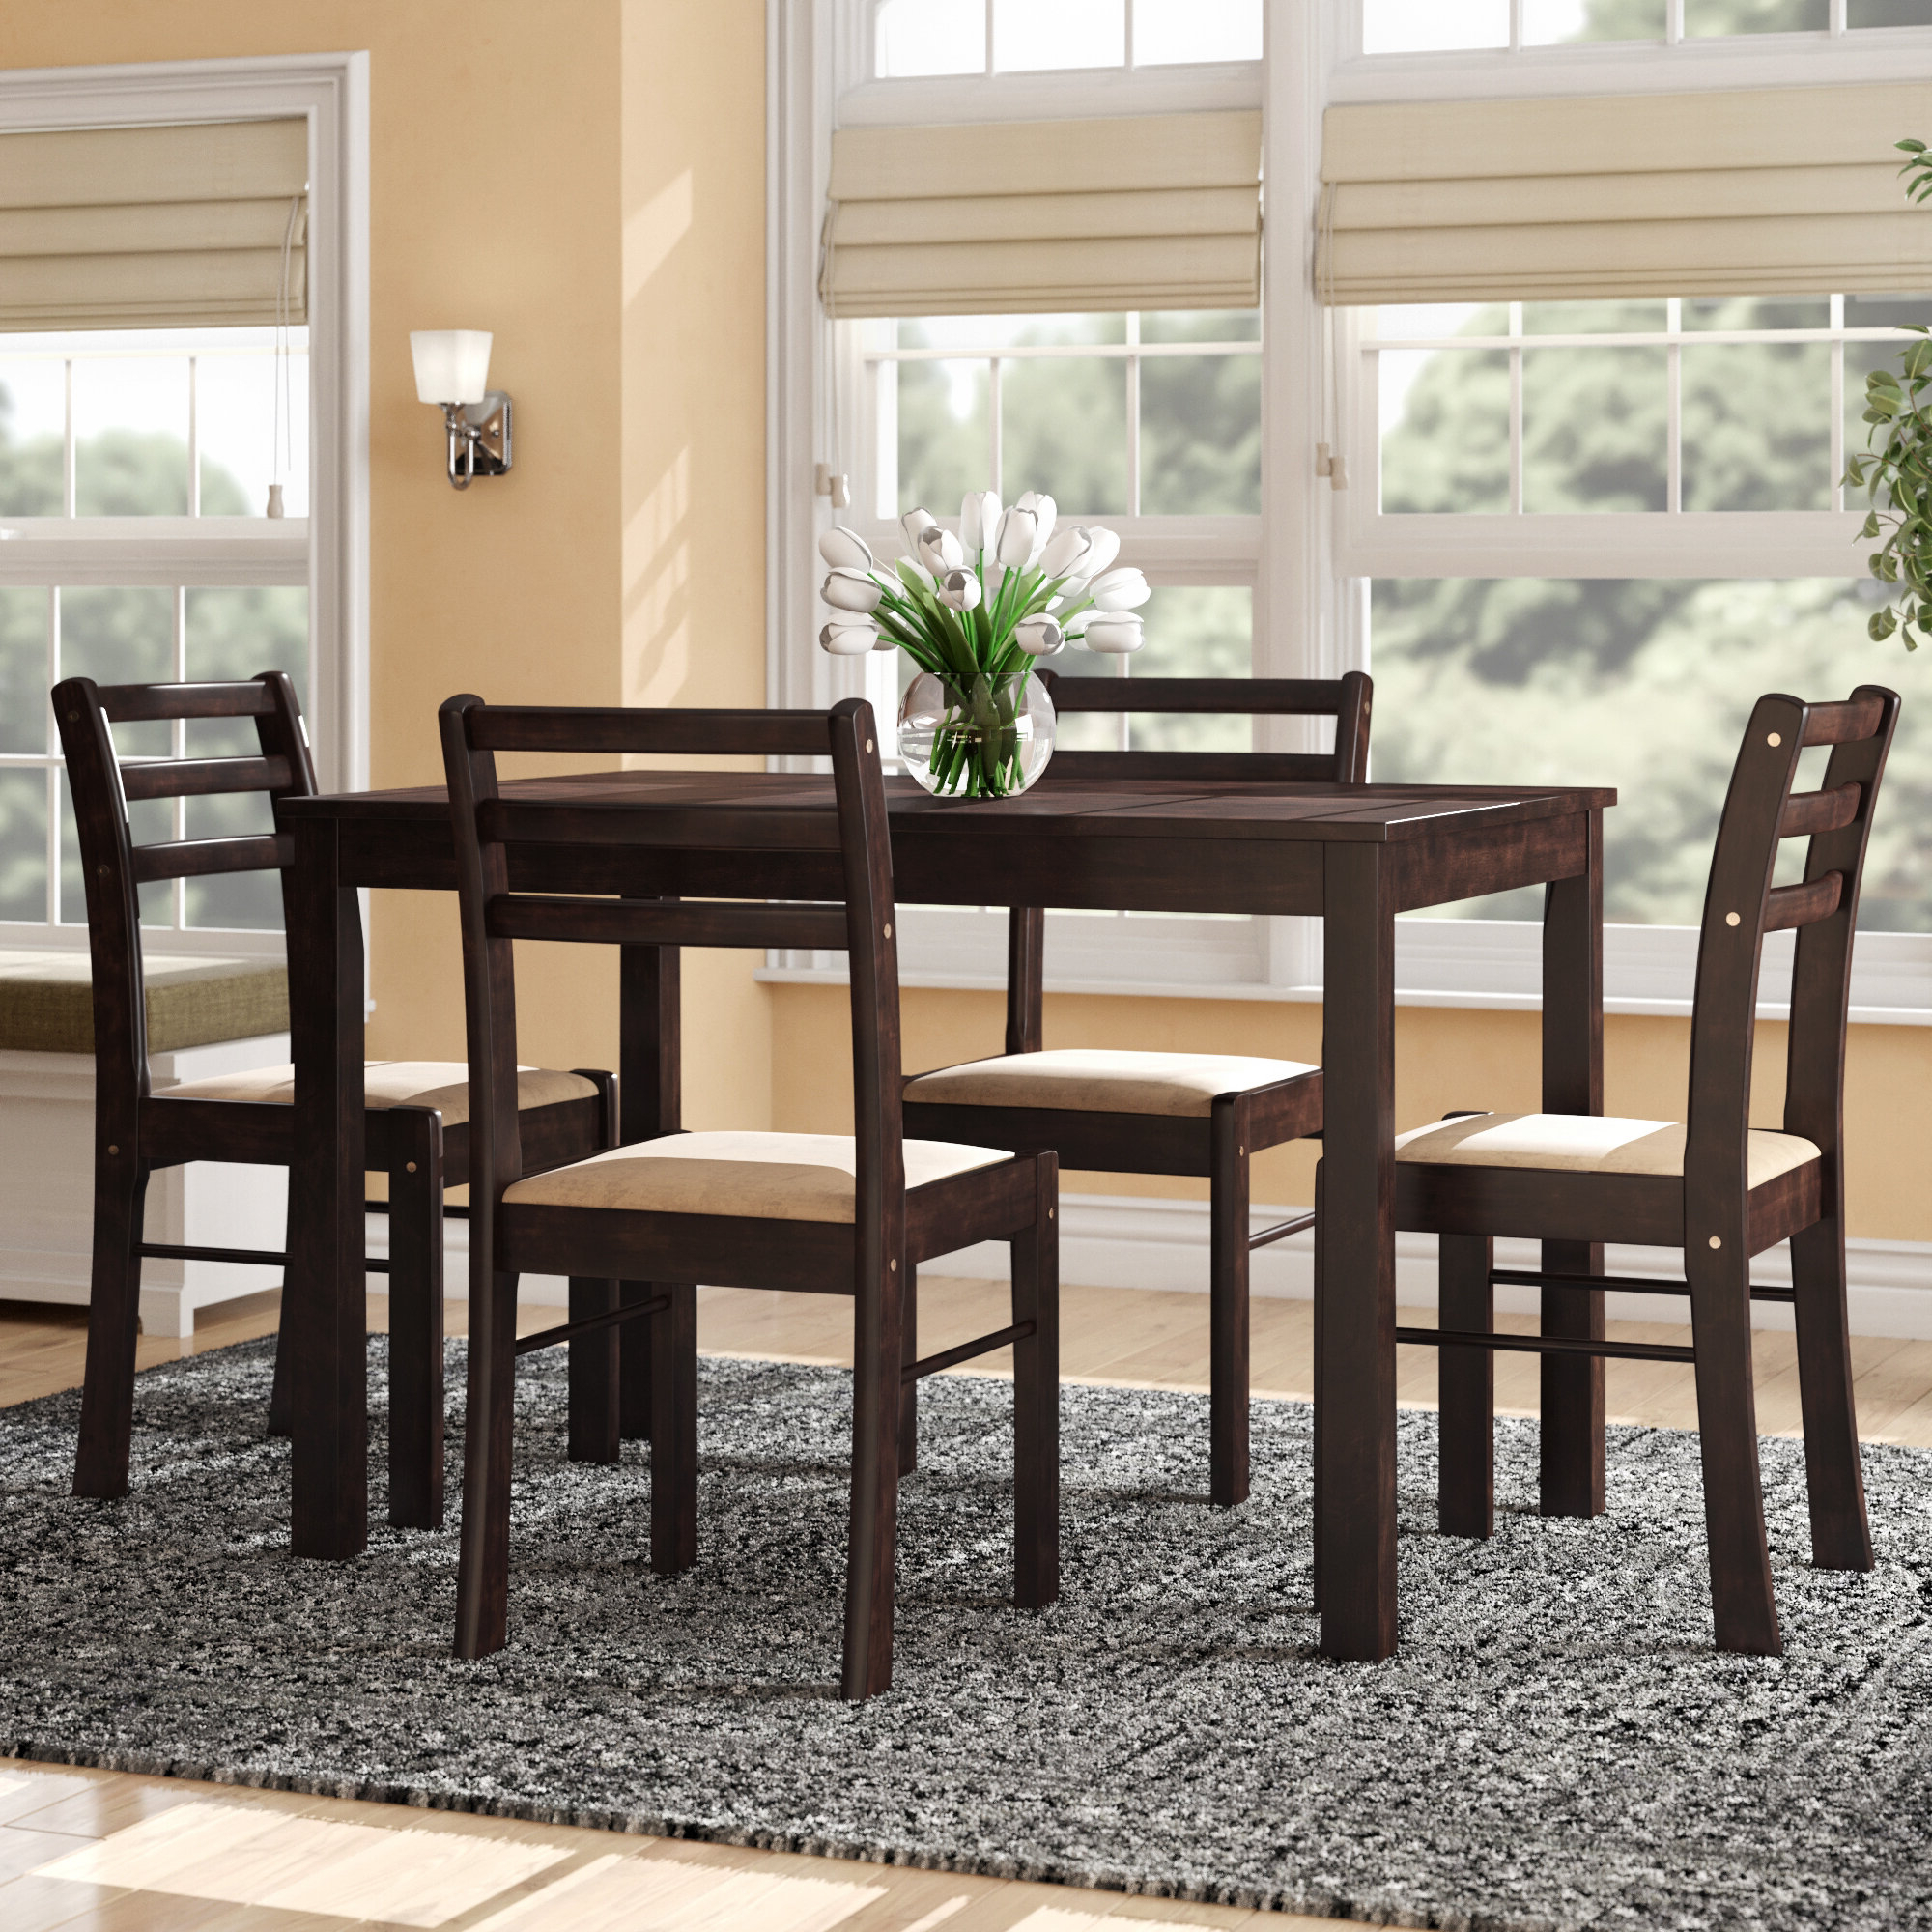 Best And Newest Portal 5 Piece Dining Set With Hanska Wooden 5 Piece Counter Height Dining Table Sets (Set Of 5) (View 4 of 20)